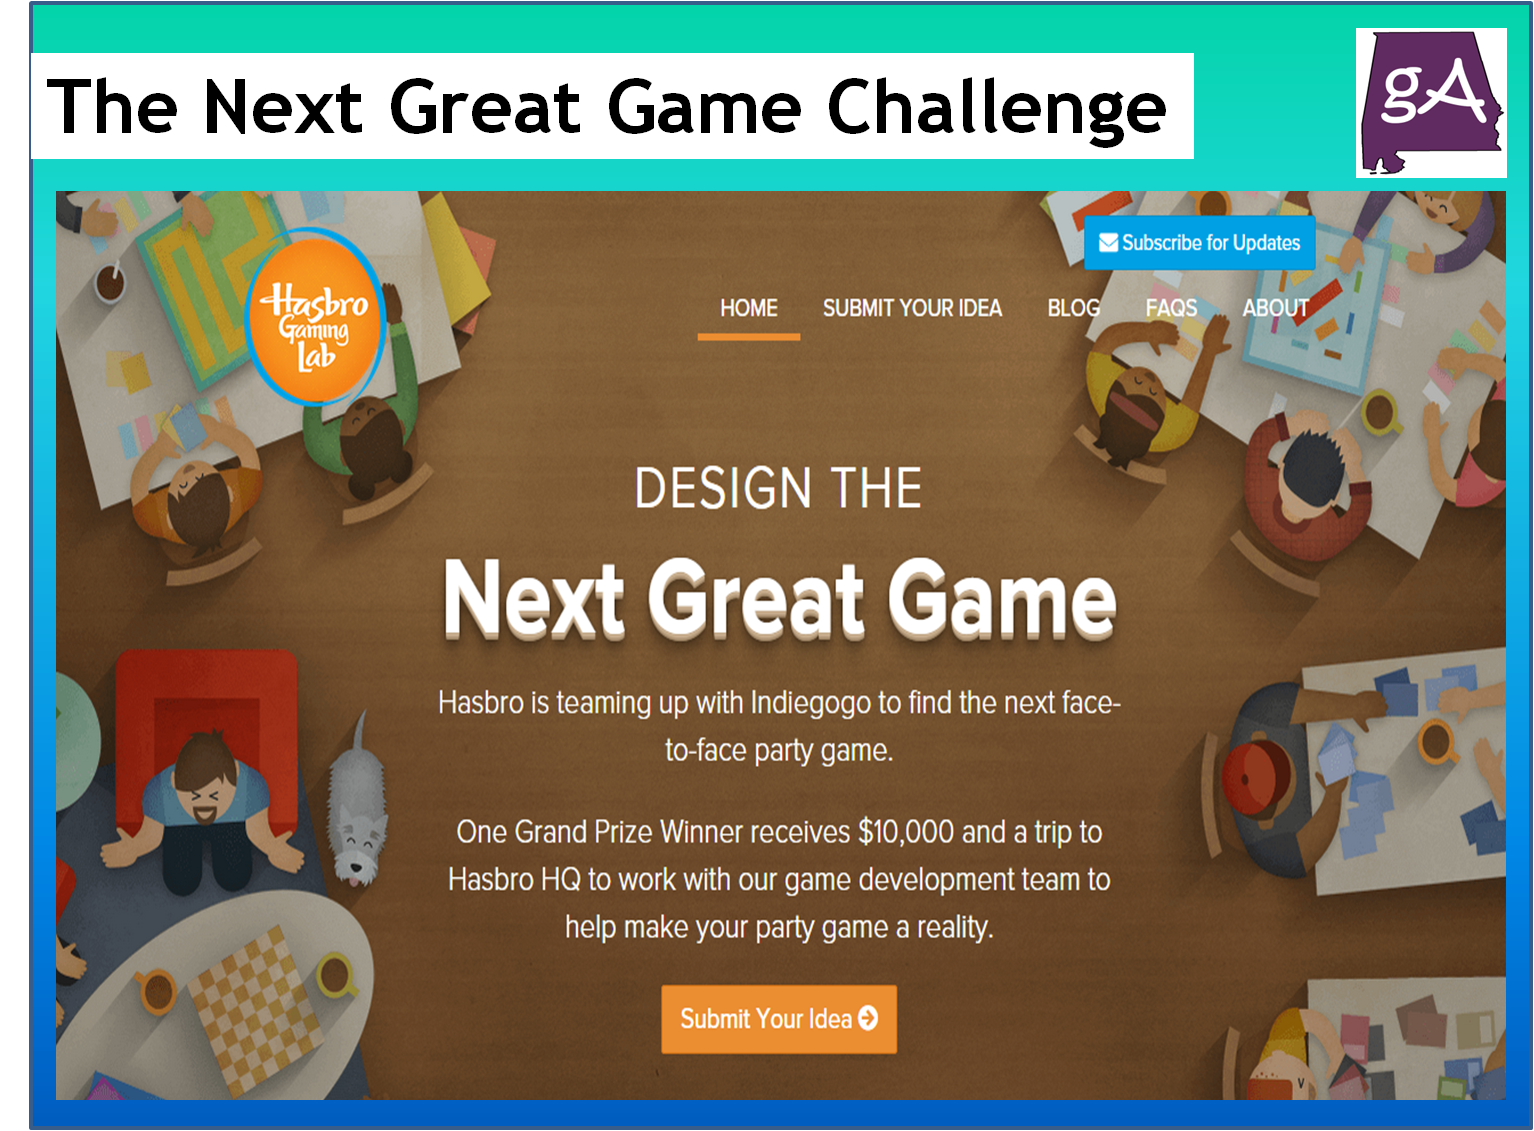 Hasbro And Indiegogo Are Partnering For The Next Great Game Challenge